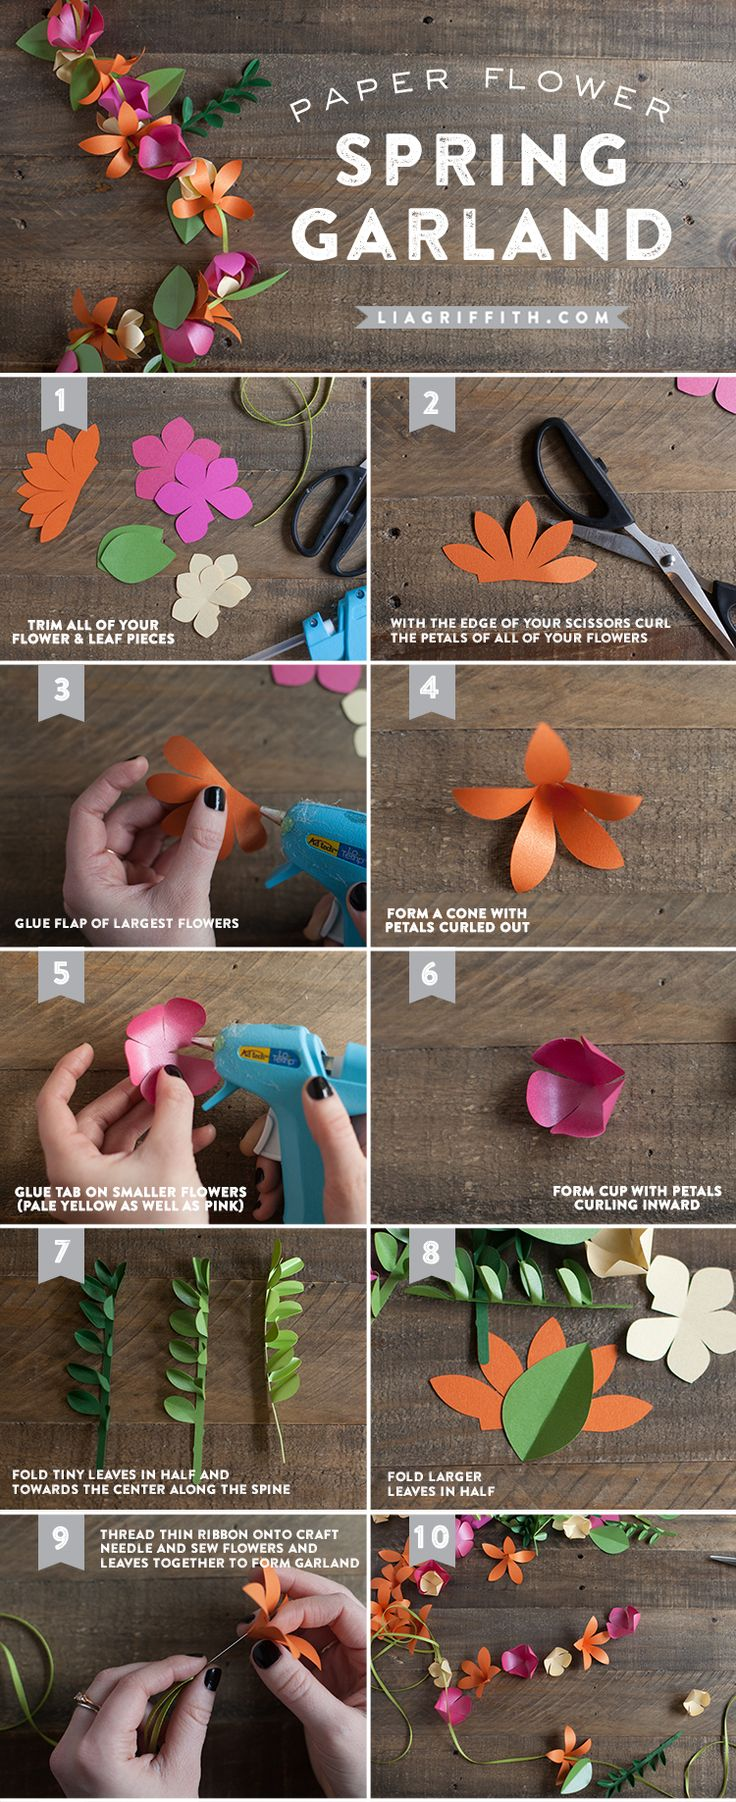 Paper Flower Spring Garland from Lia Grifith